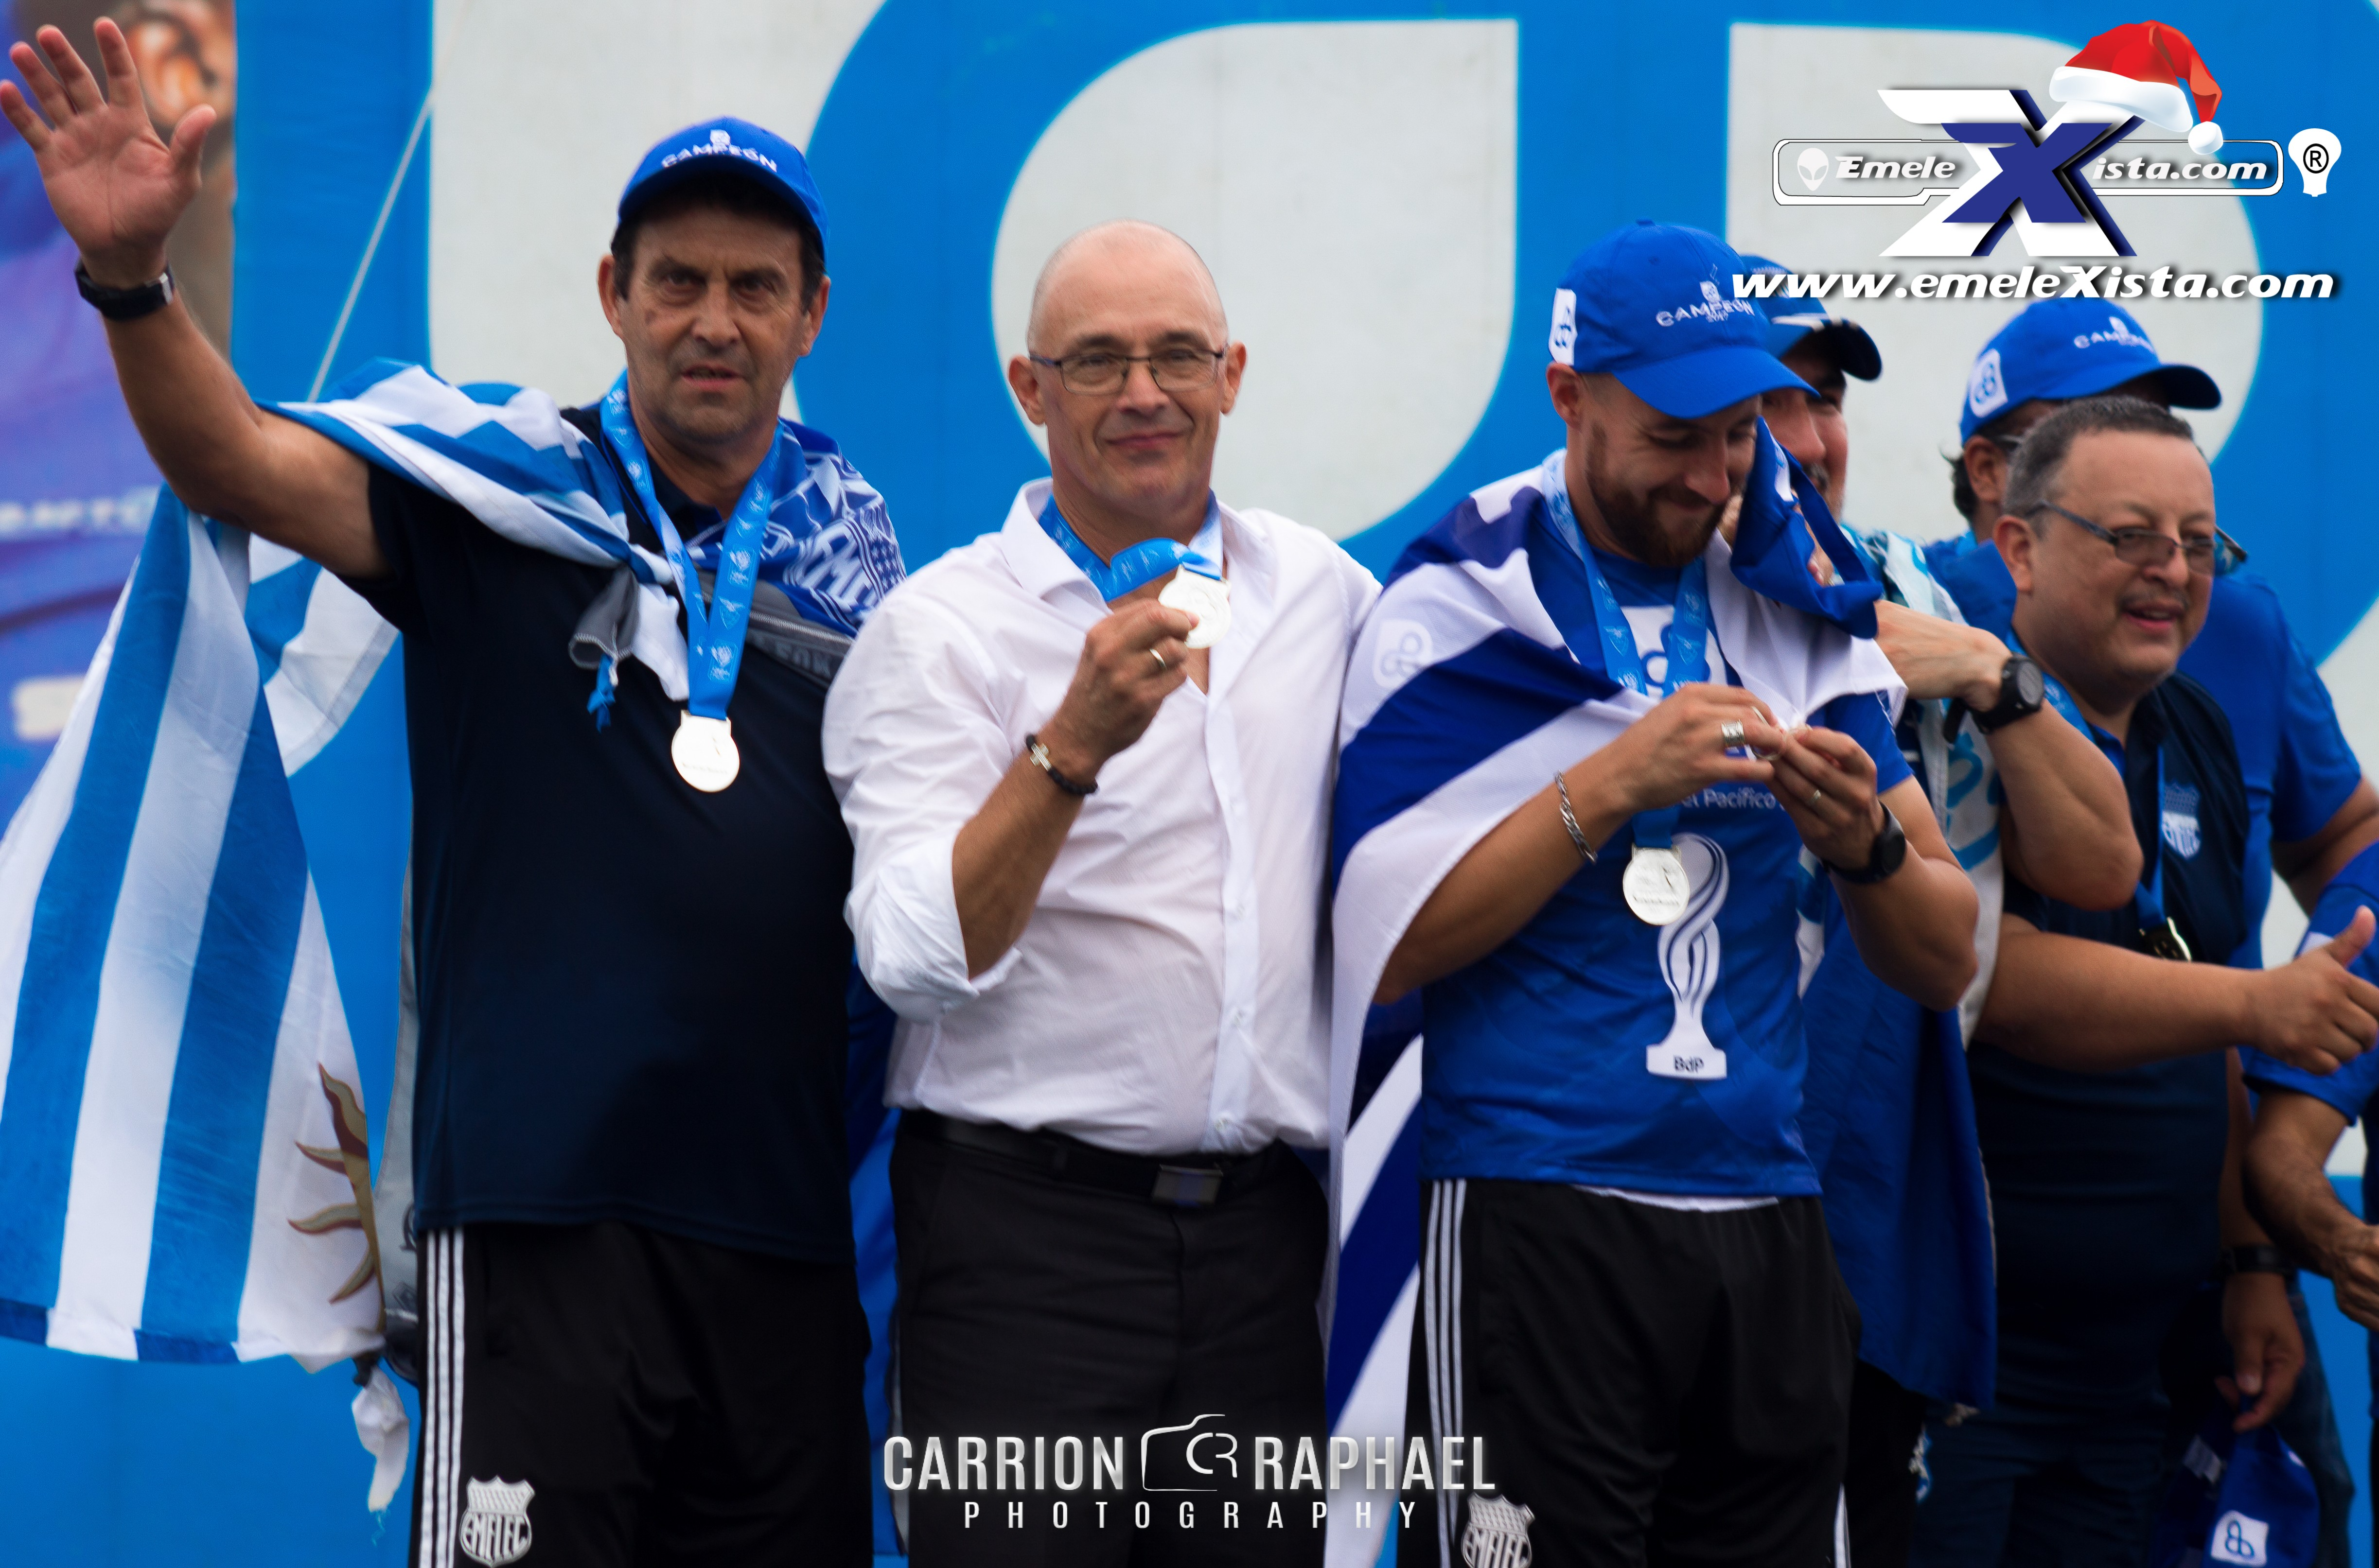 delfin emelec final vuelta photocarrion raphael carrion viteri